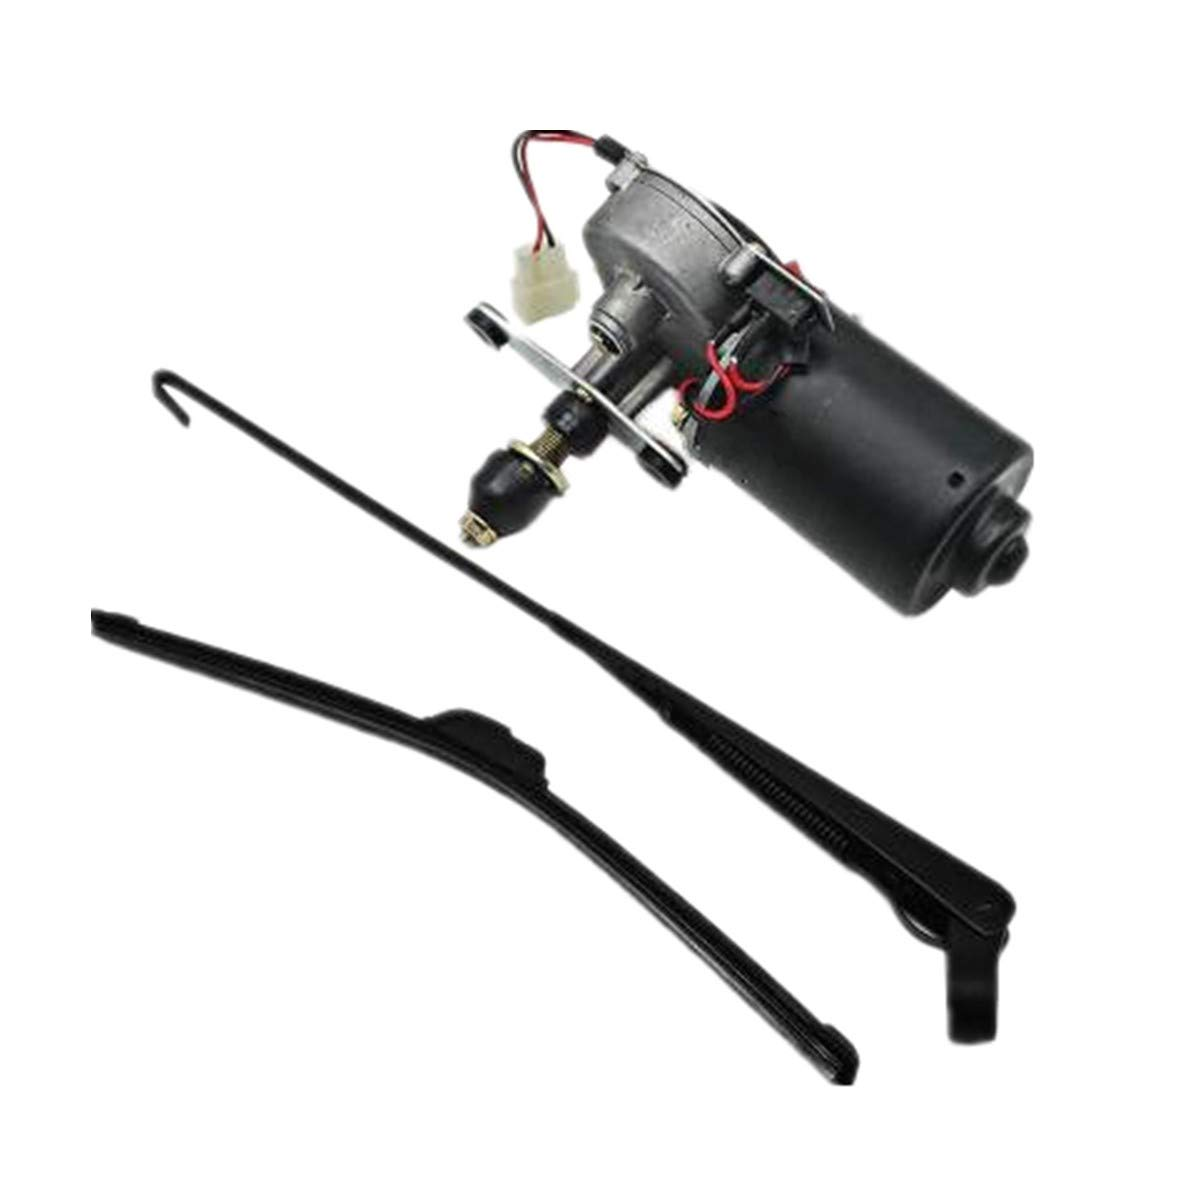 with 12V Motor Hard Coated Polycarbonate Universal Windshield Wiper Arm 90 Degree Wipe Sweep Wiper Blade and Motor 12V CongratsYiCross2019 Electric UTV Windshield Wiper Kit